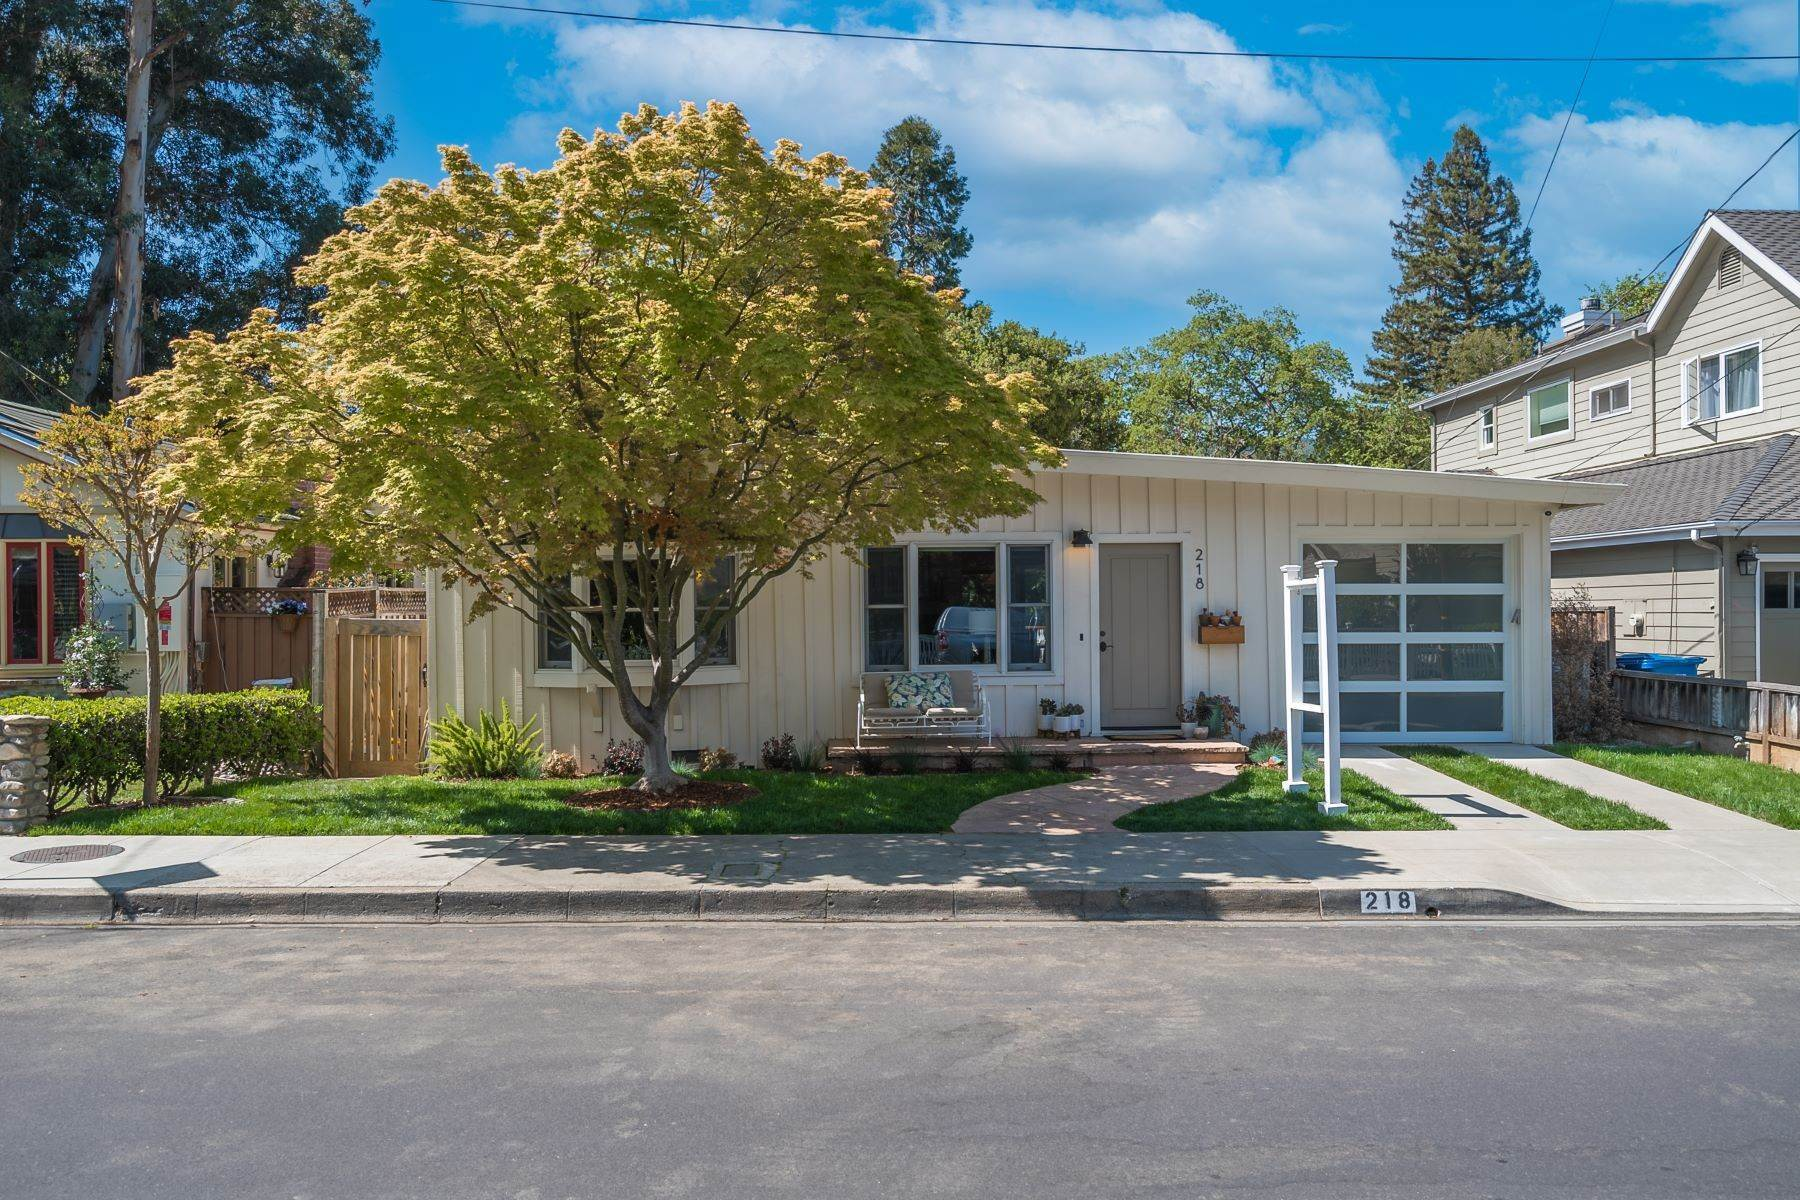 Single Family Homes for Active at Los Gatos Charmer 218 Johnson Avenue Los Gatos, California 95030 United States